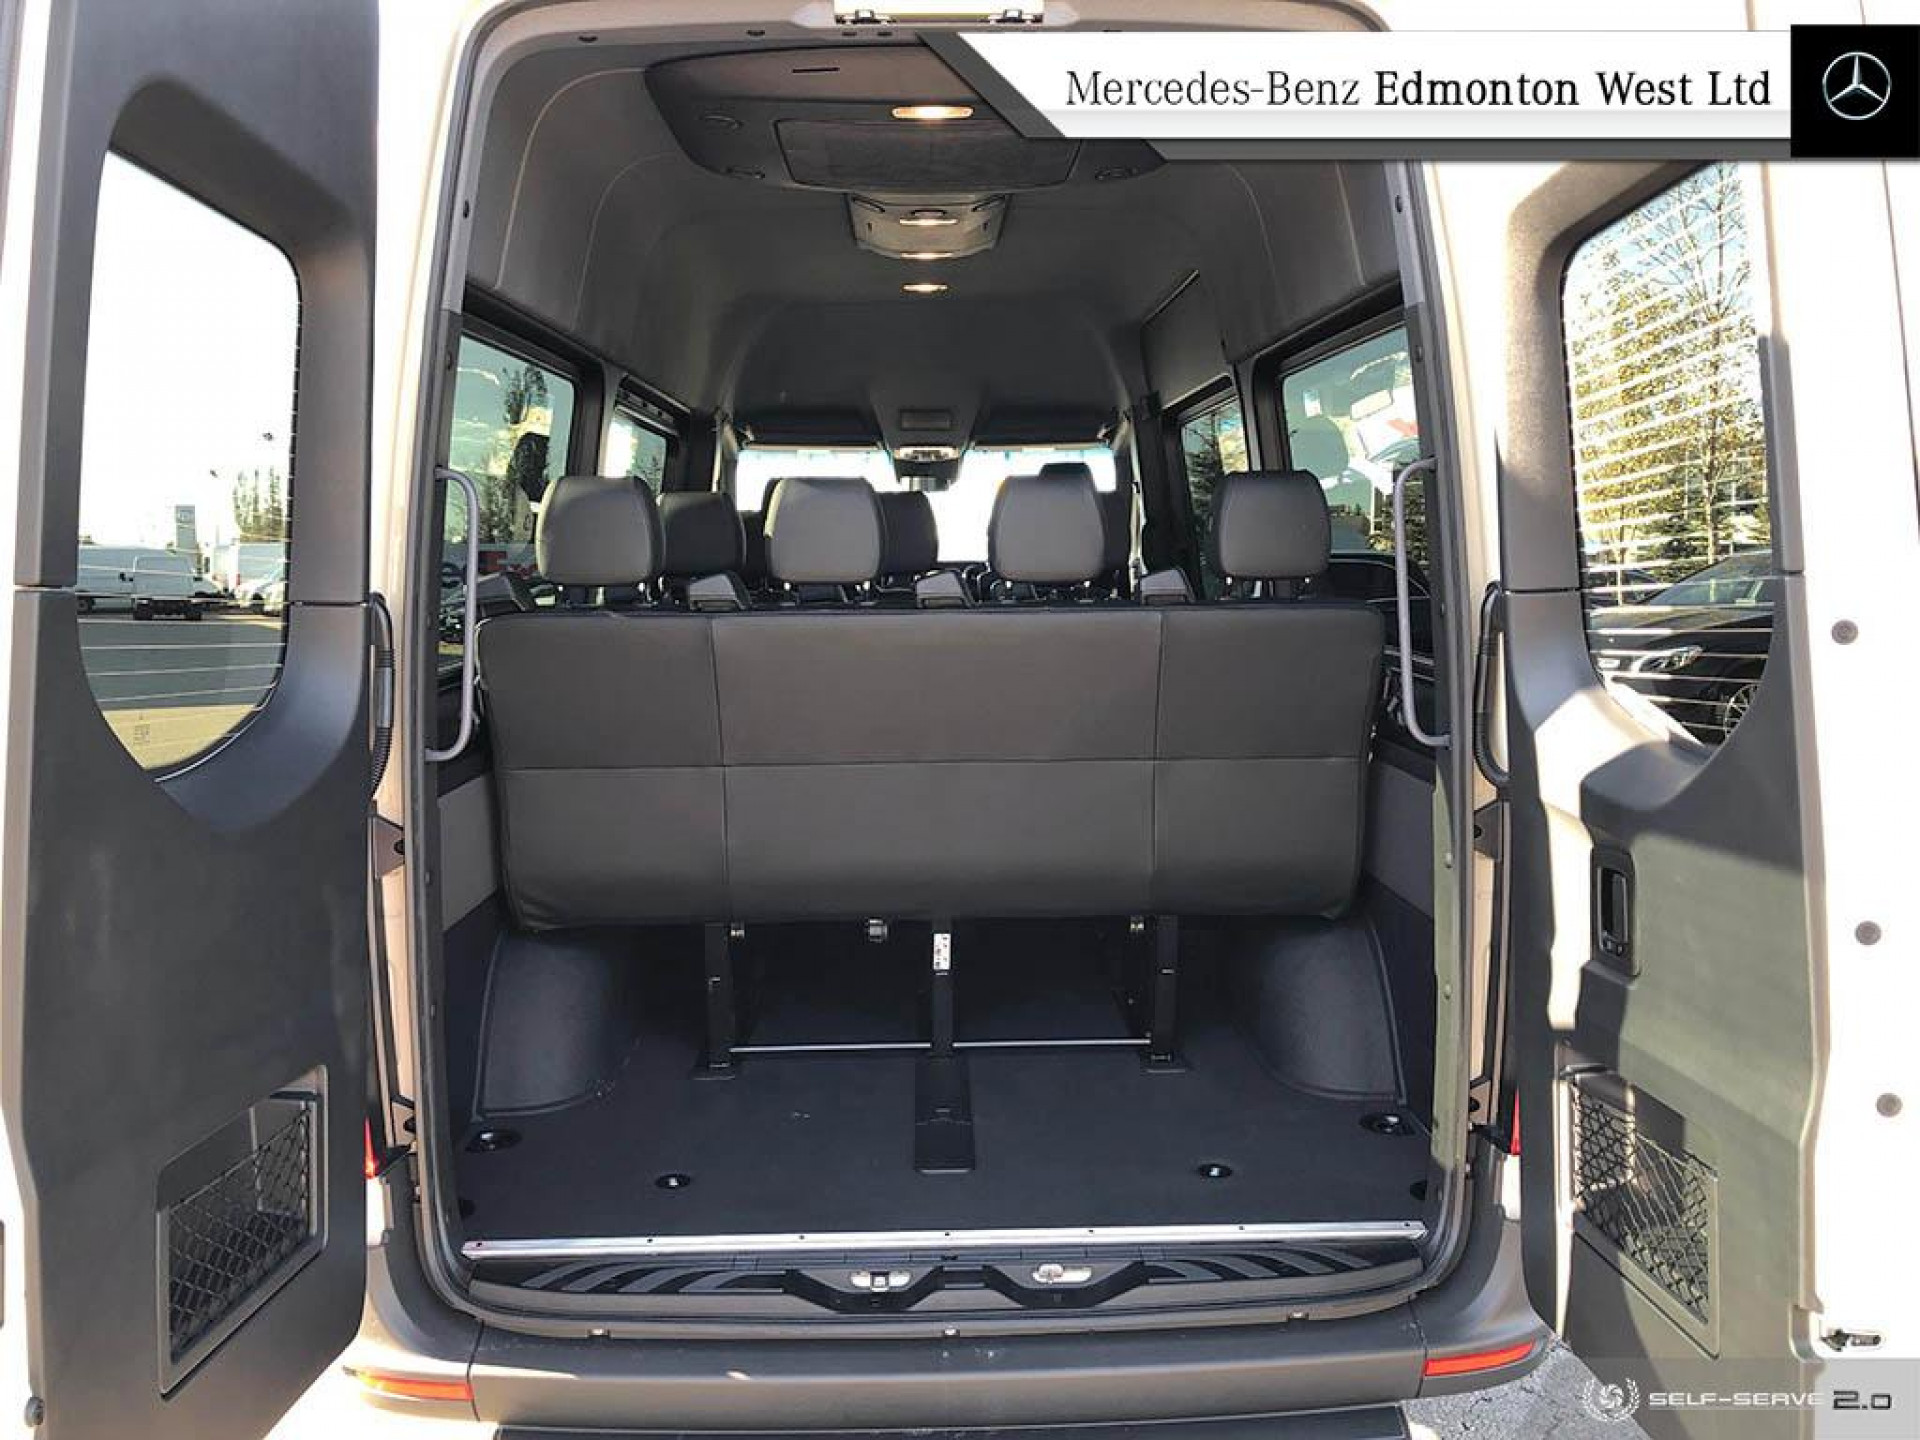 "New 2019 Mercedes Benz Sprinter Passenger Van 2500 V6 144"" 4x4 Save $5,000!"